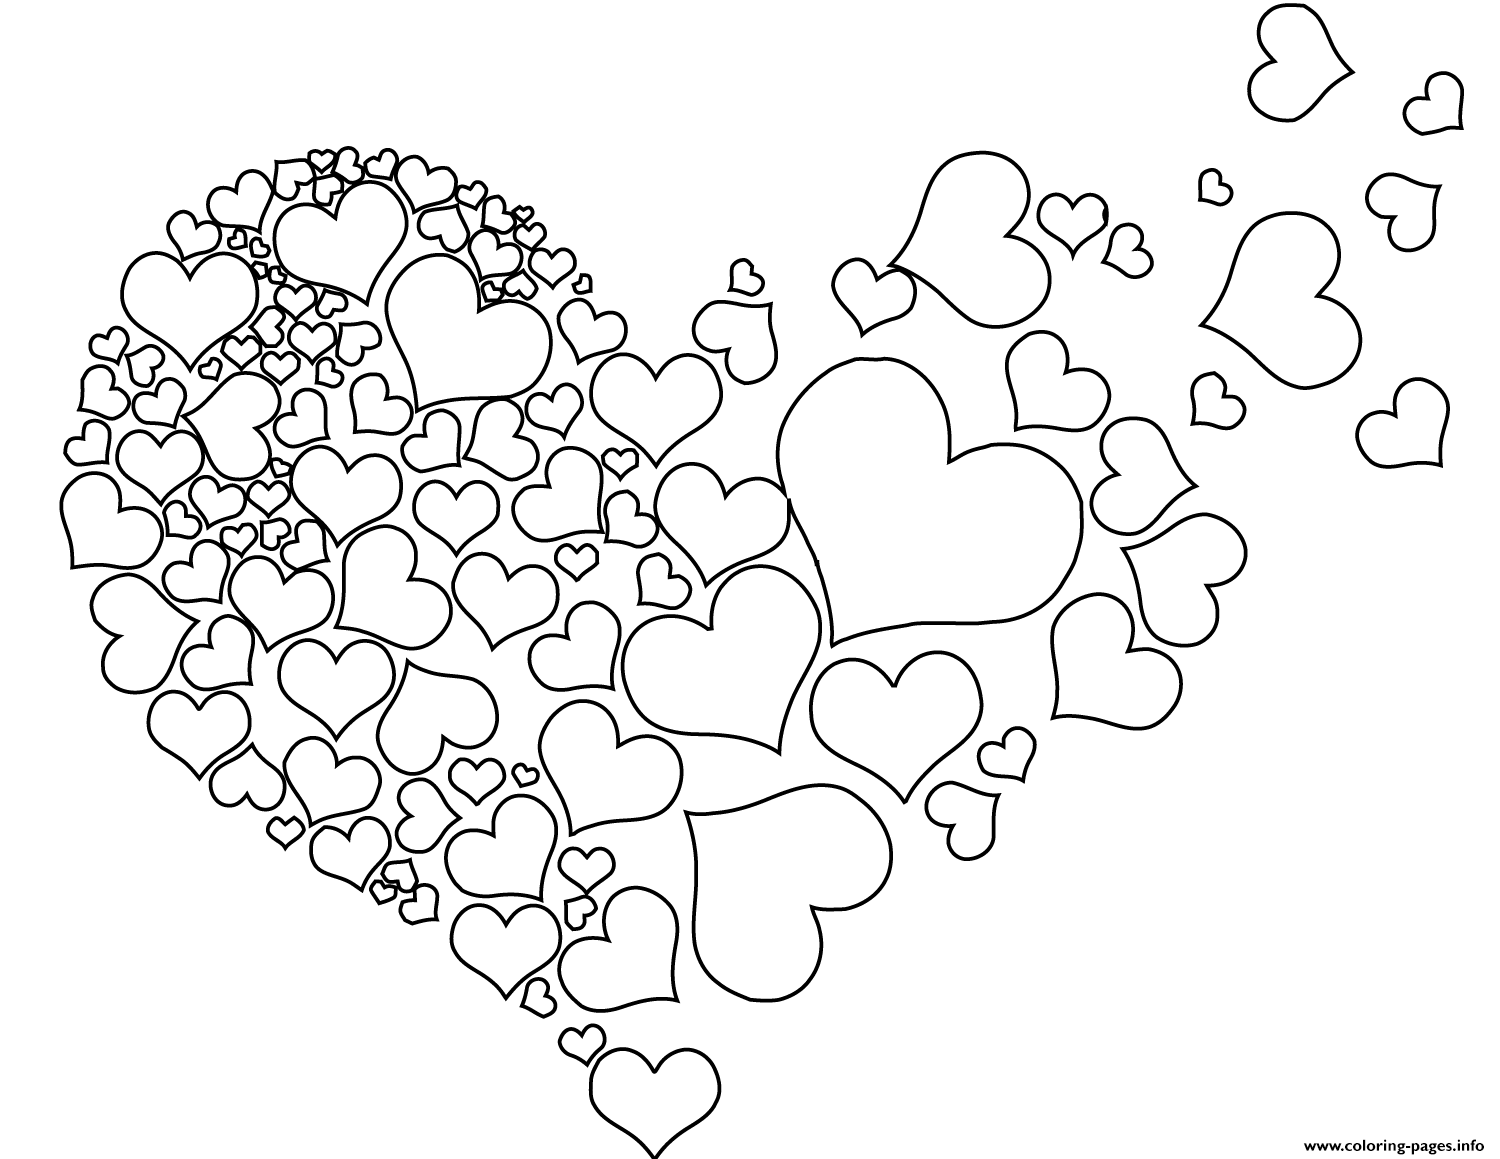 Torn Heart coloring pages